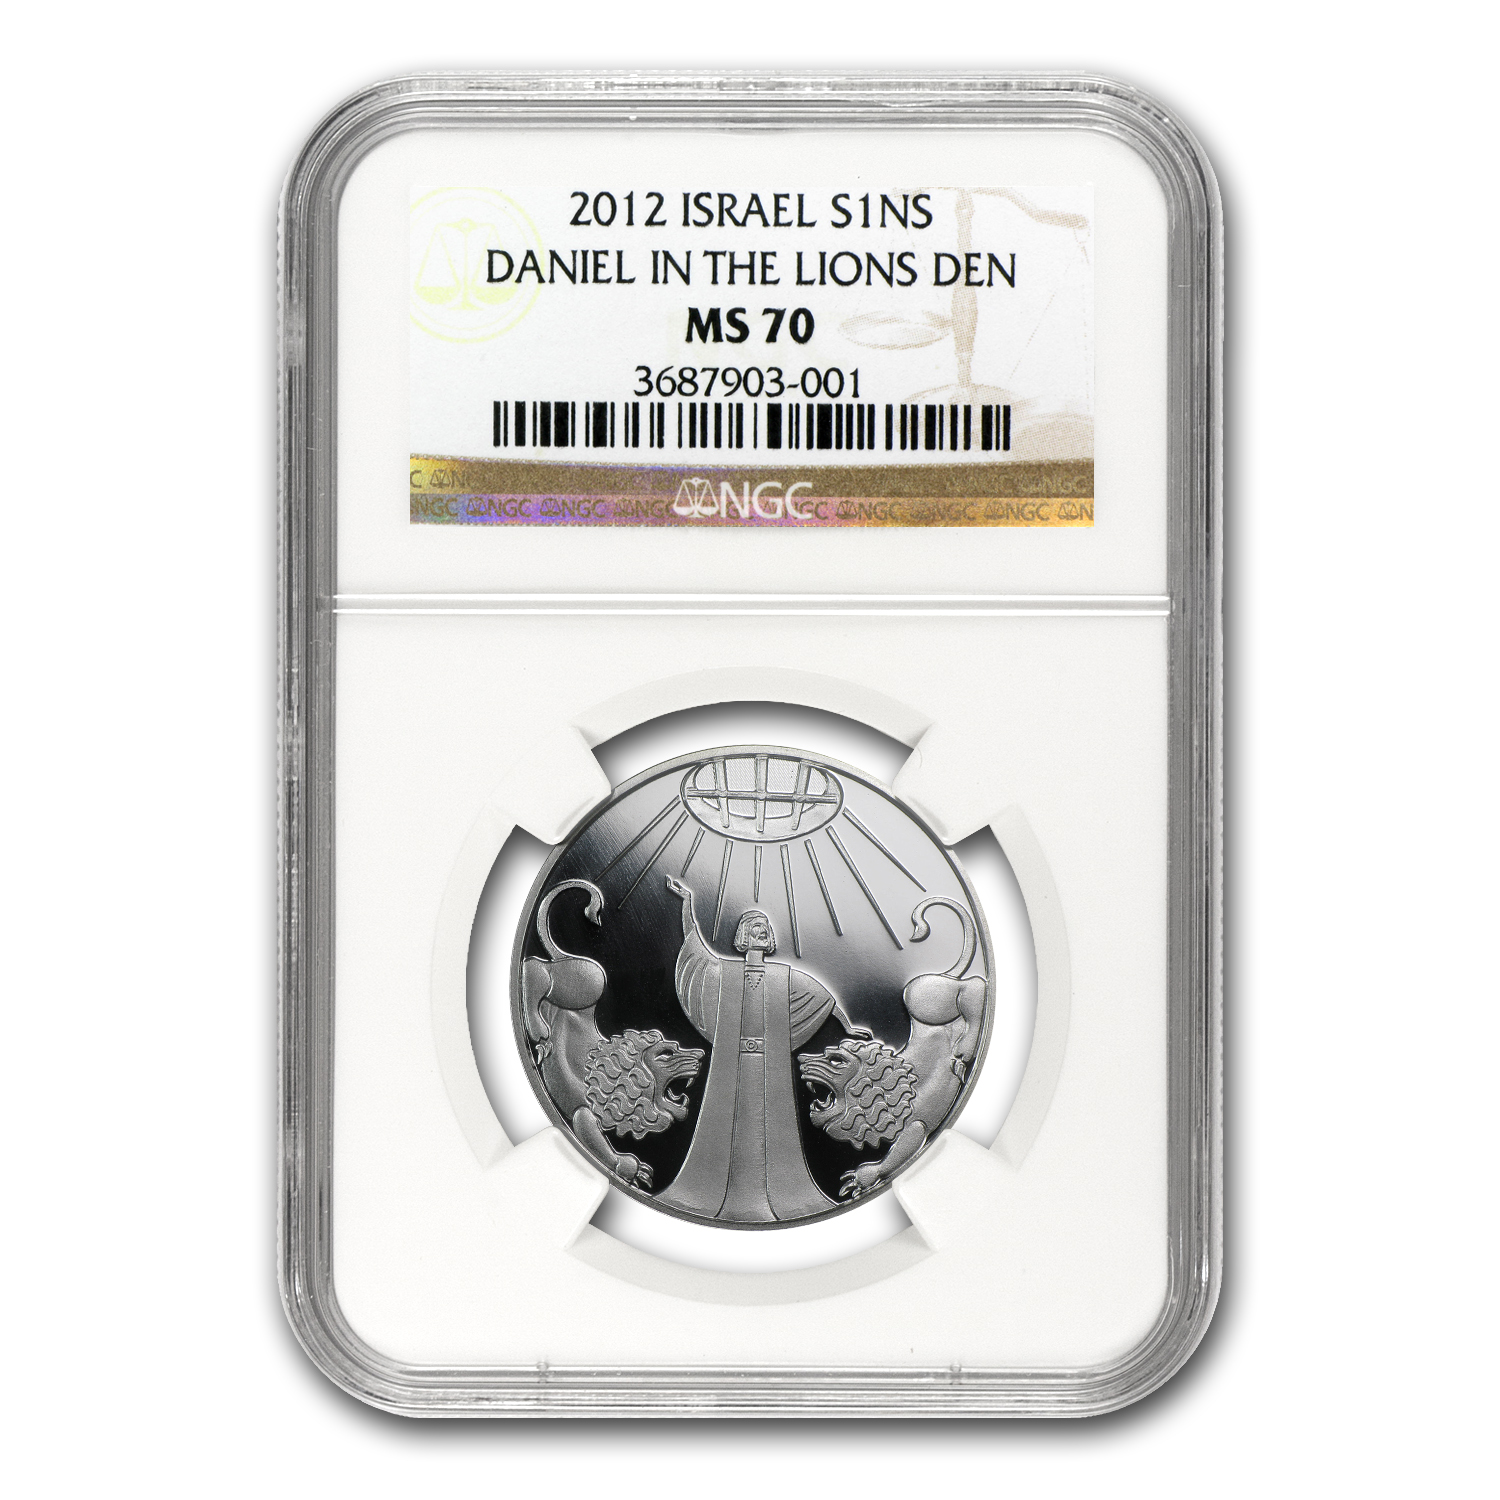 2012 Israel Silver 1 NIS Daniel in the Lion's Den MS-70 NGC